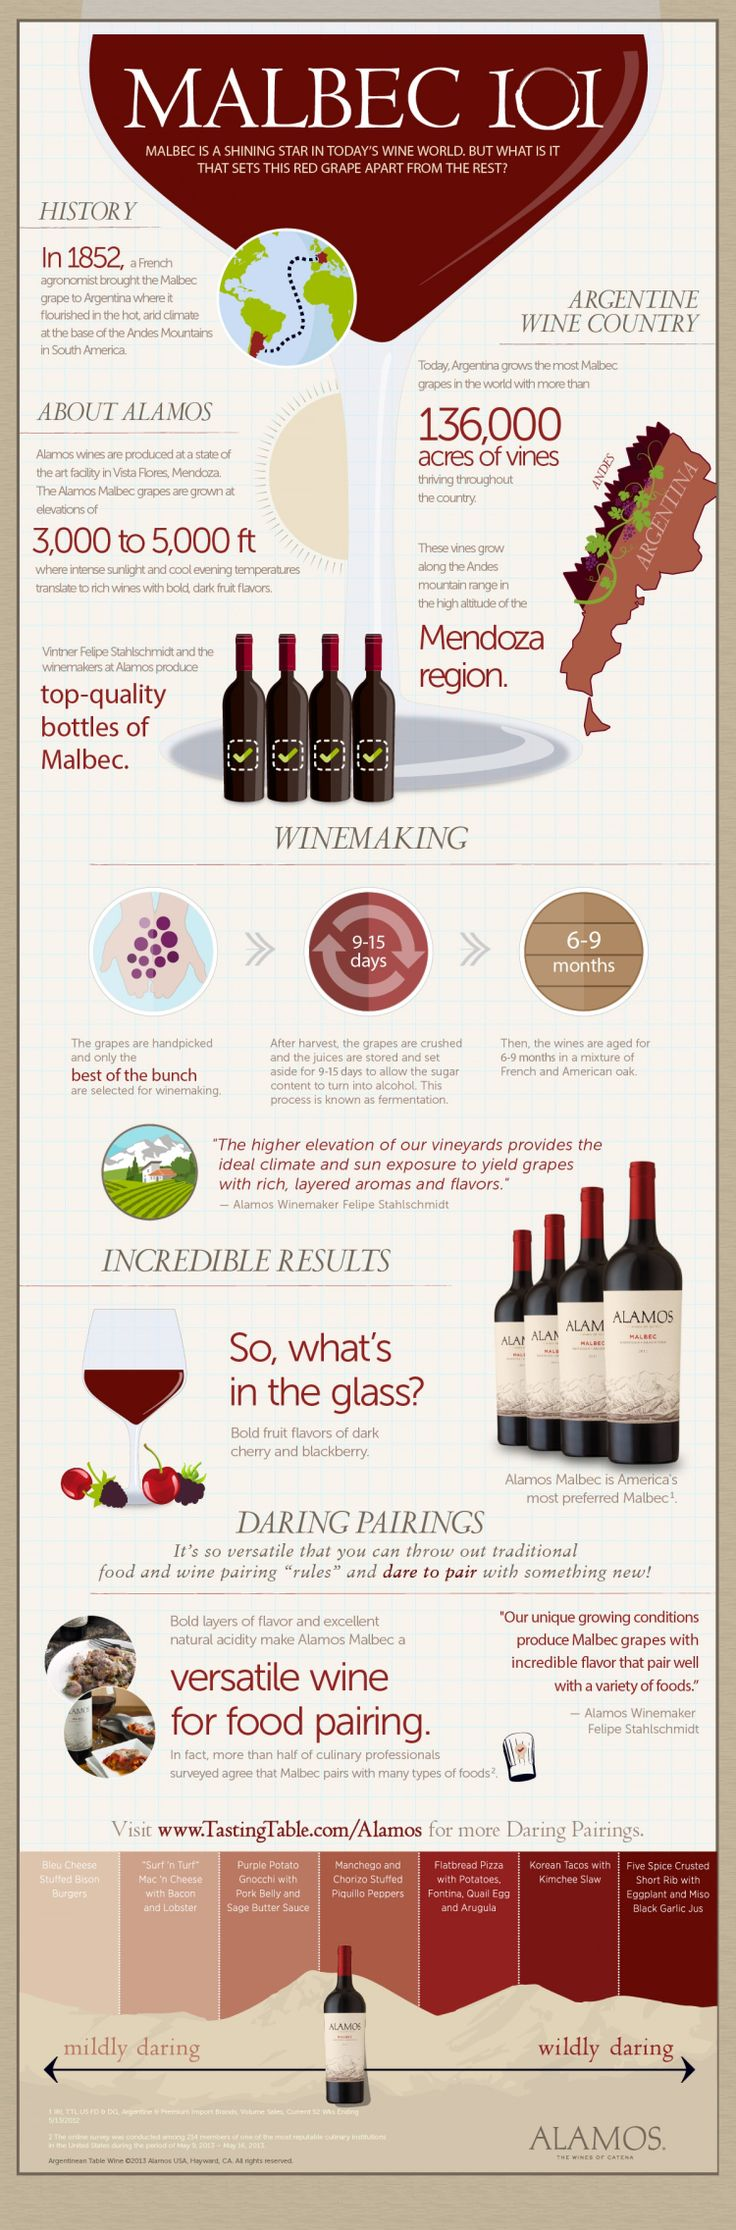 #wine #malbec | Bon Viveur Gastronomy | Pinterest | Wine, Malbec wine and Wines